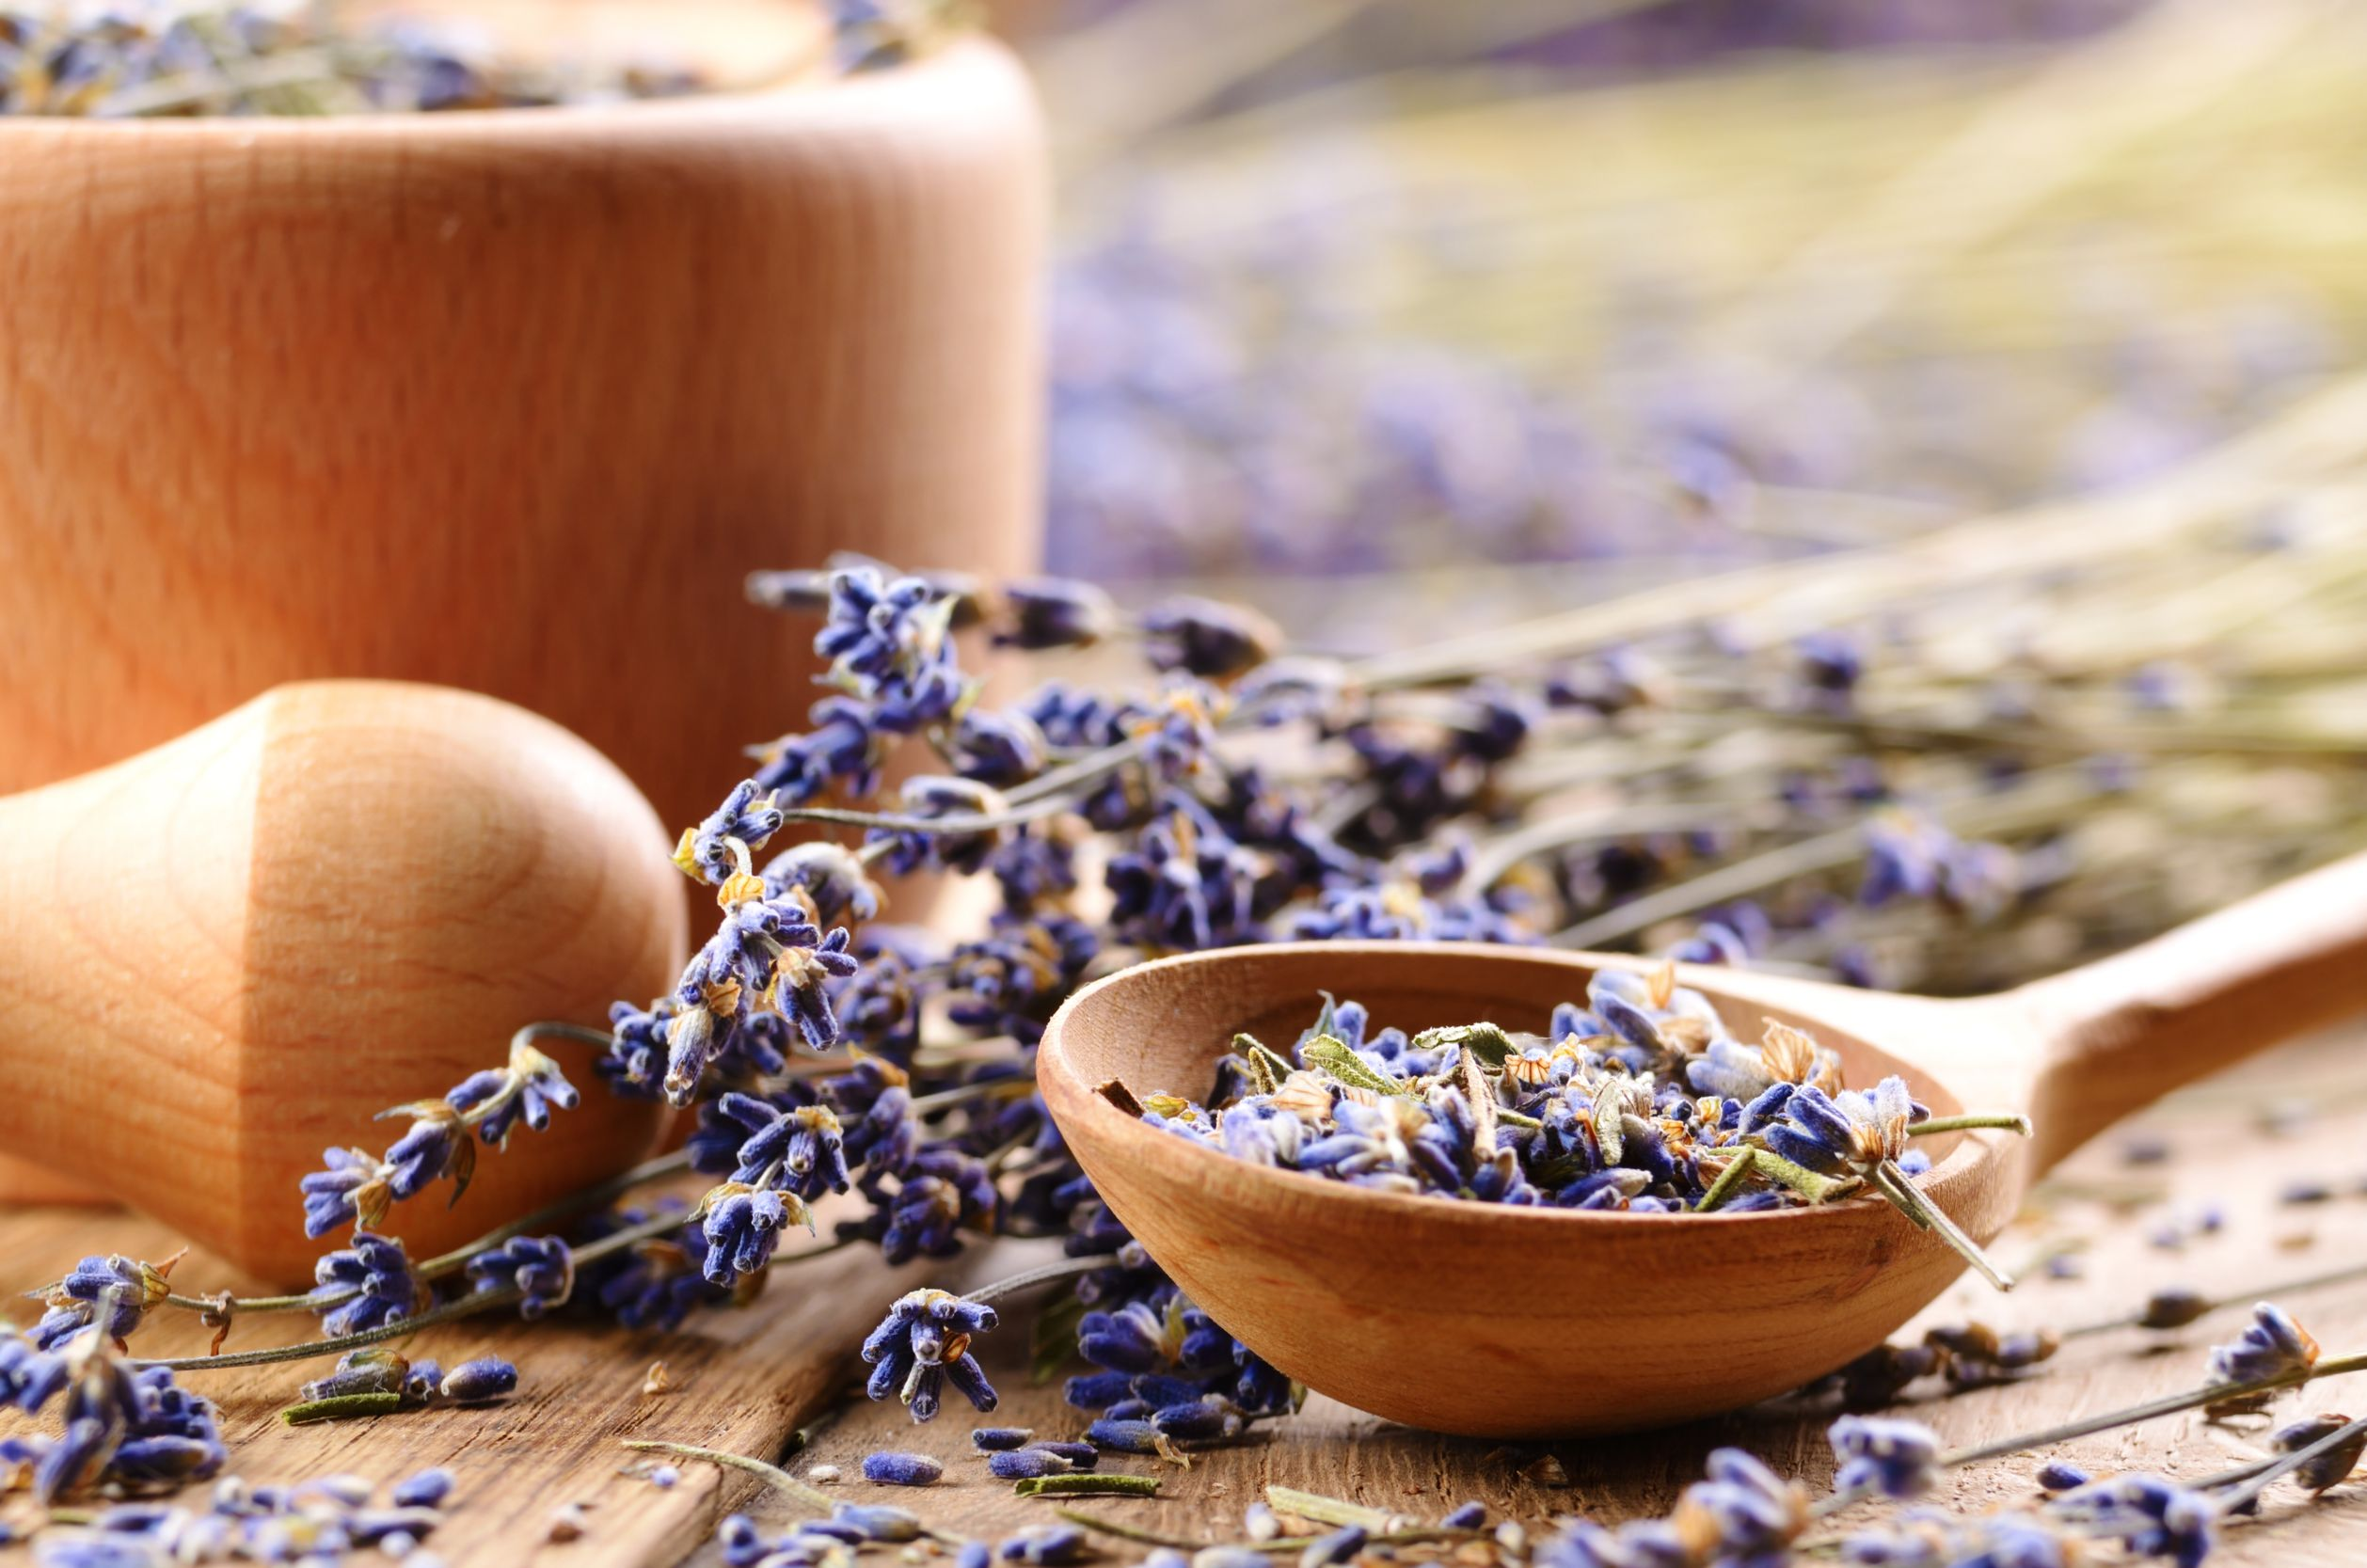 16480750 - pestle and mortar with lavender flowers on the oak table